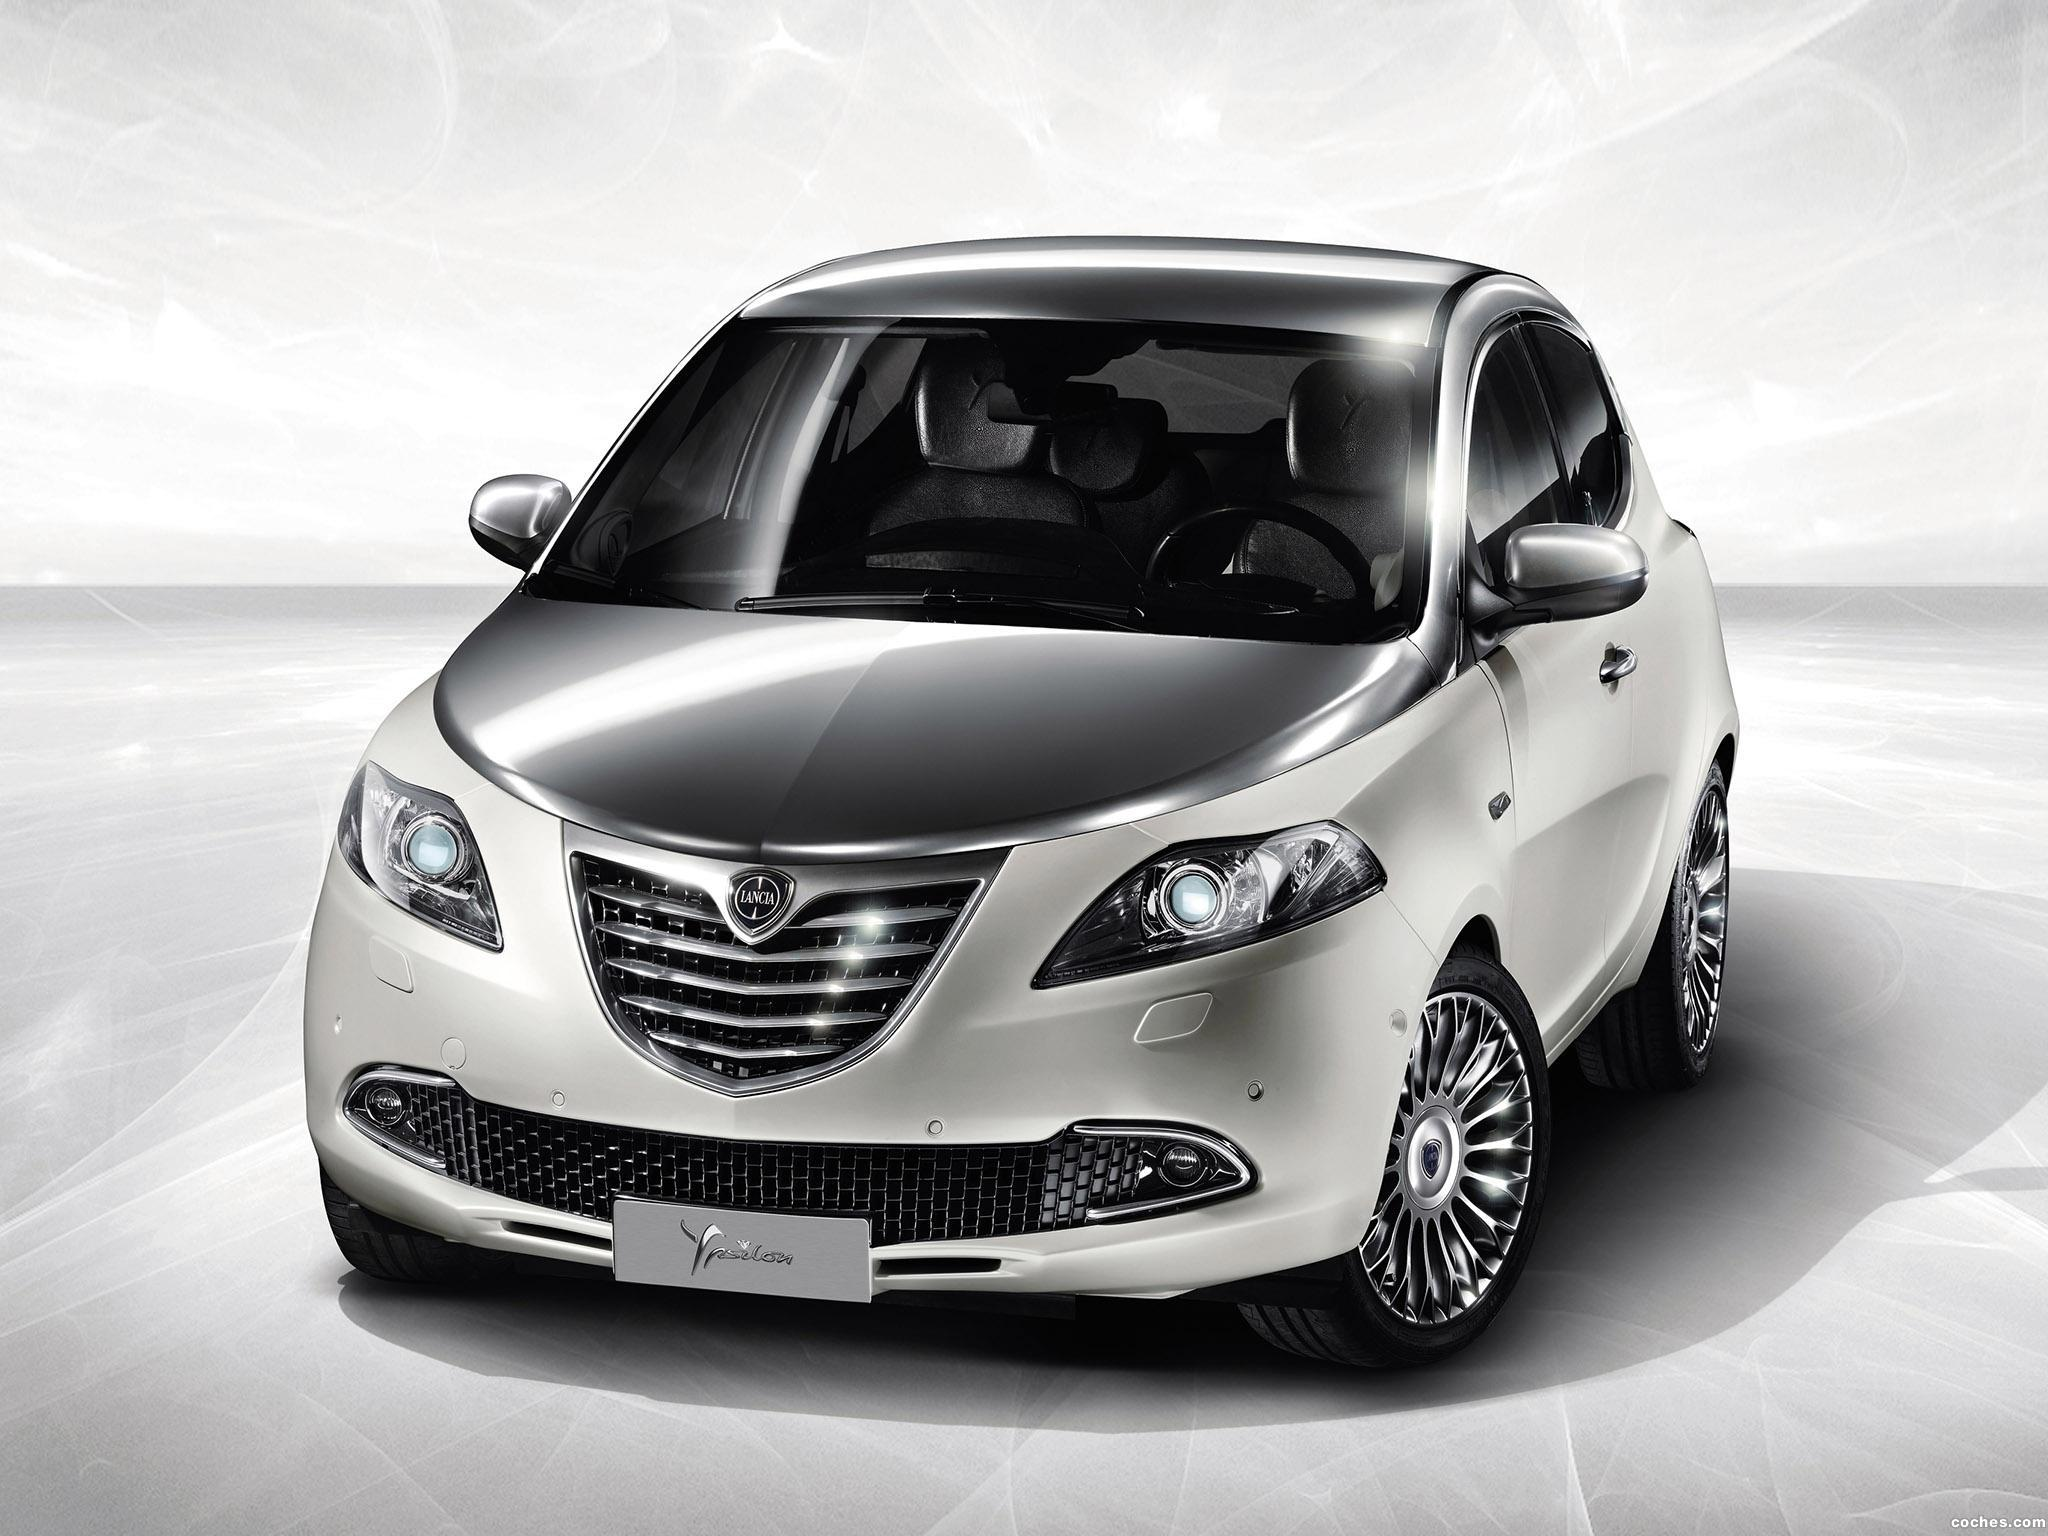 Foto 0 de Lancia Ypsilon Diamond 2011